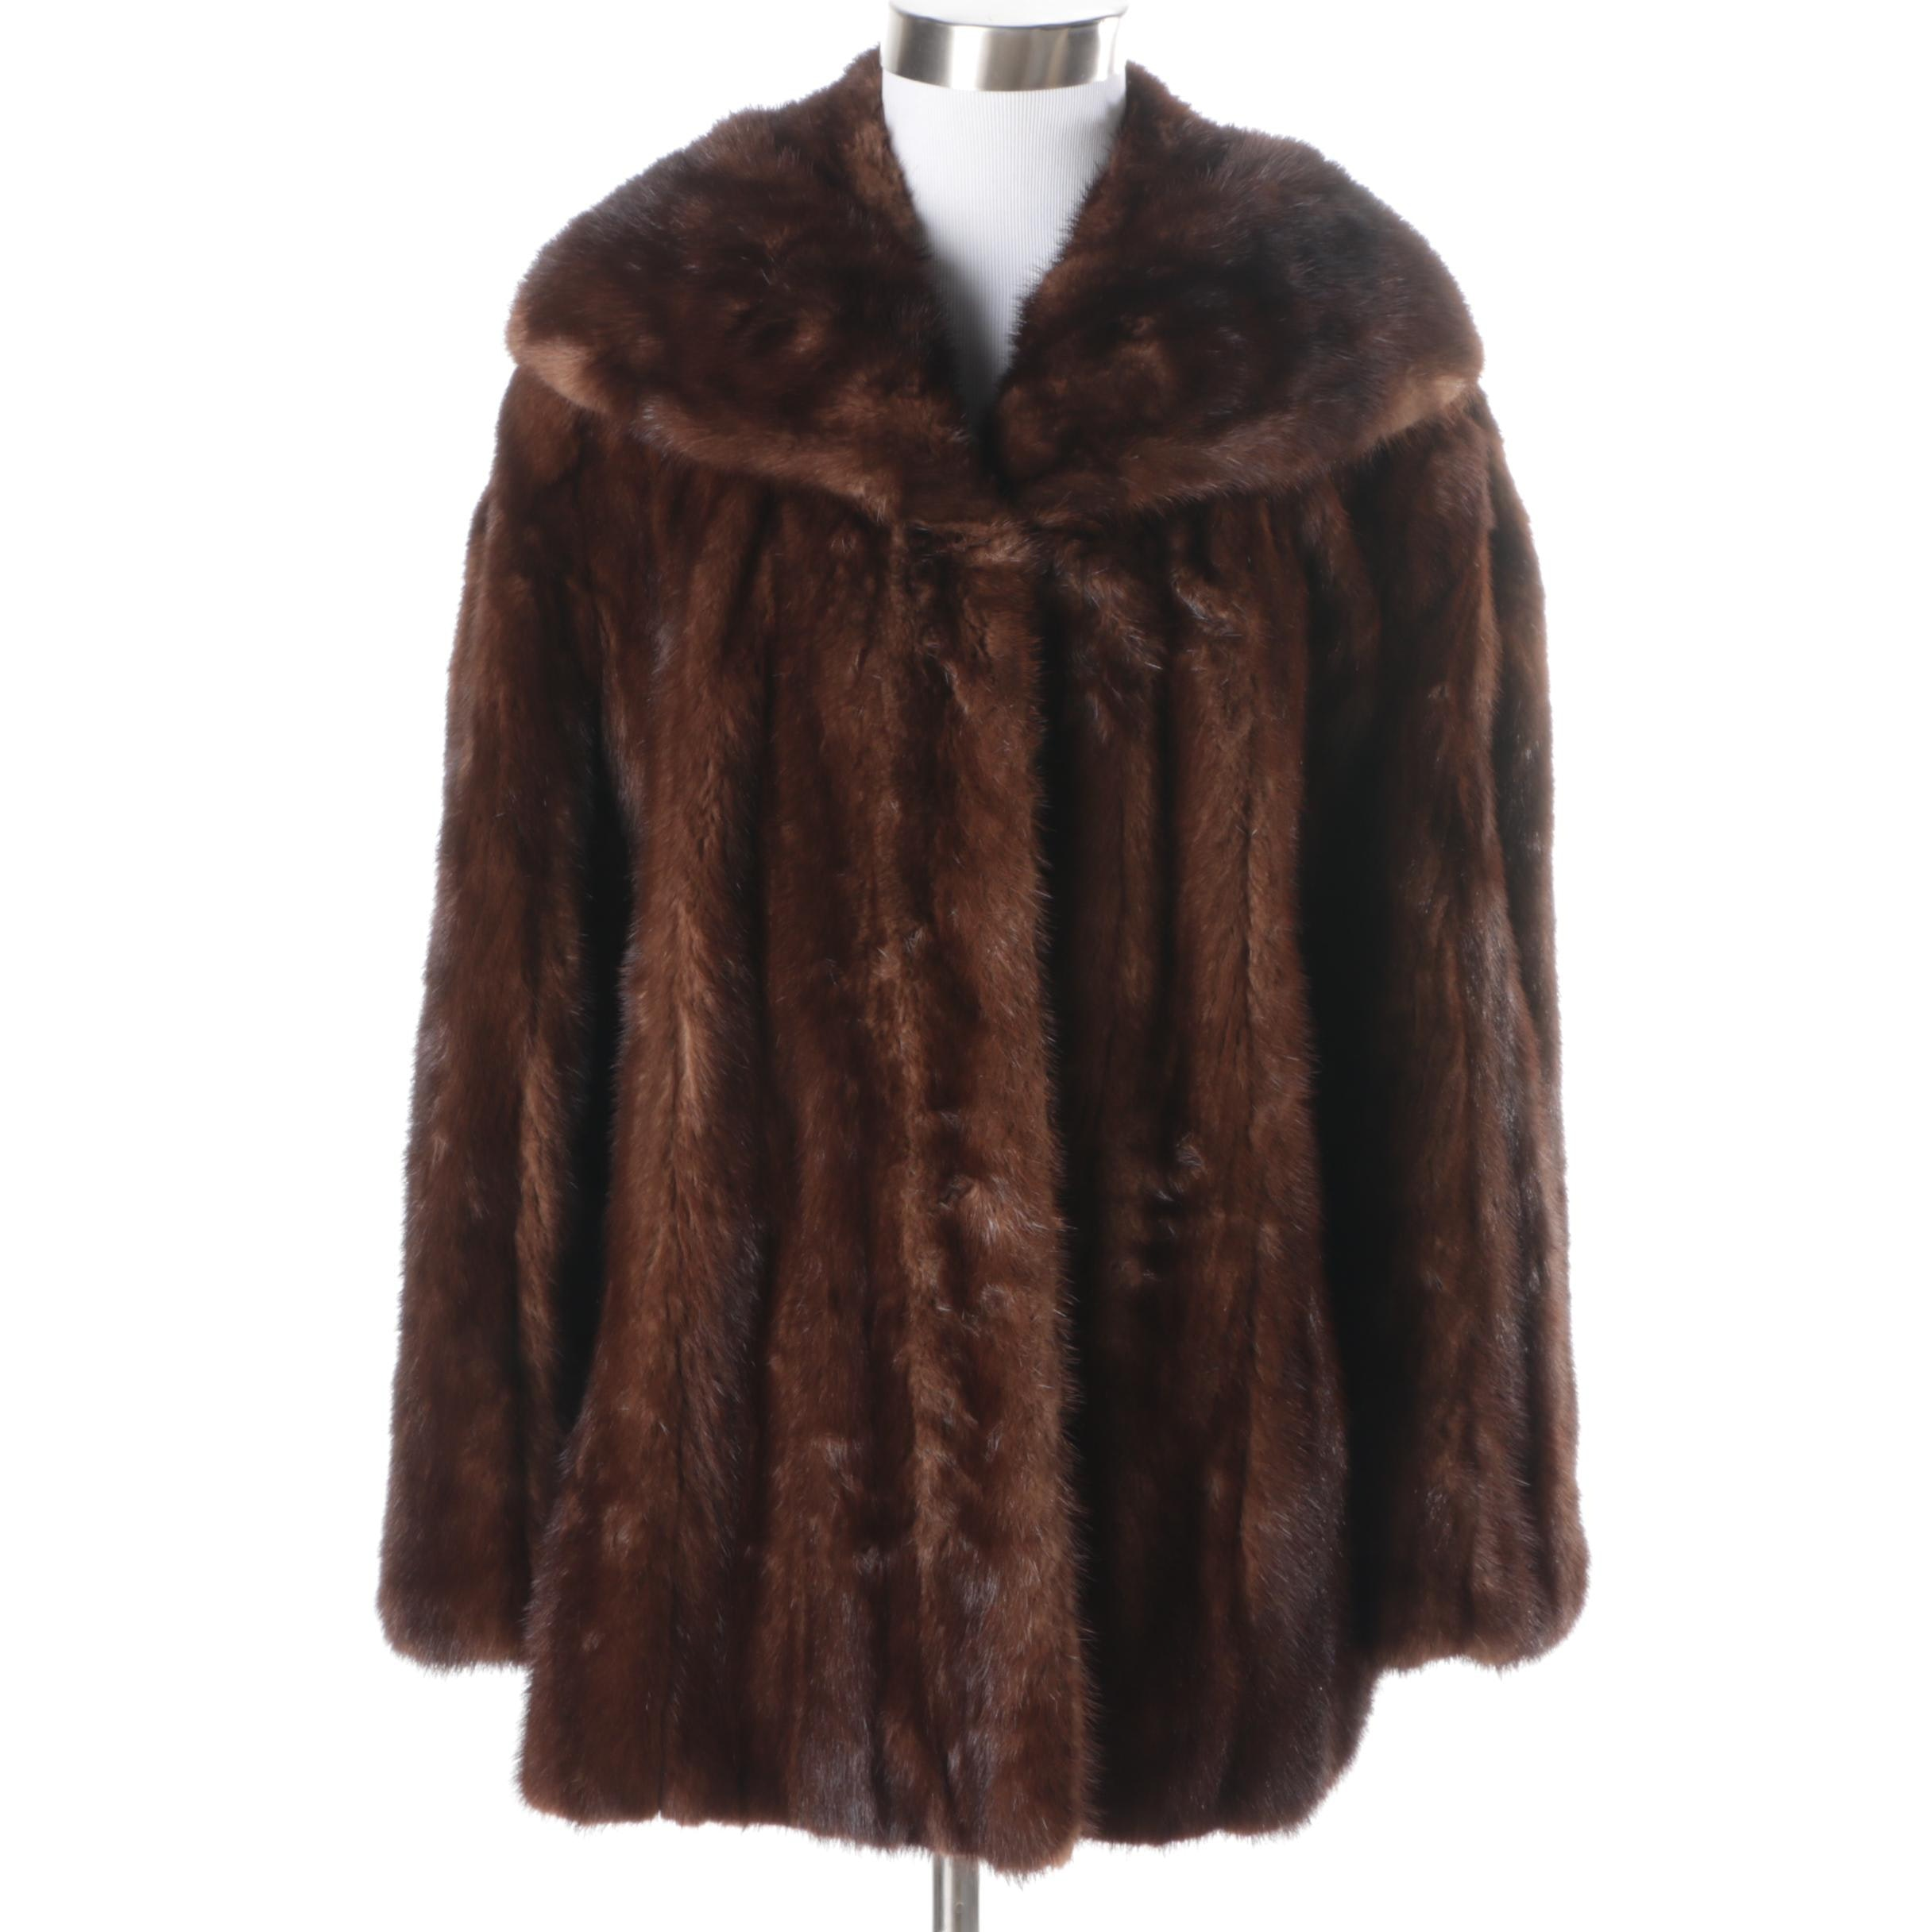 Women's E. Heinemann Mink Fur Coat